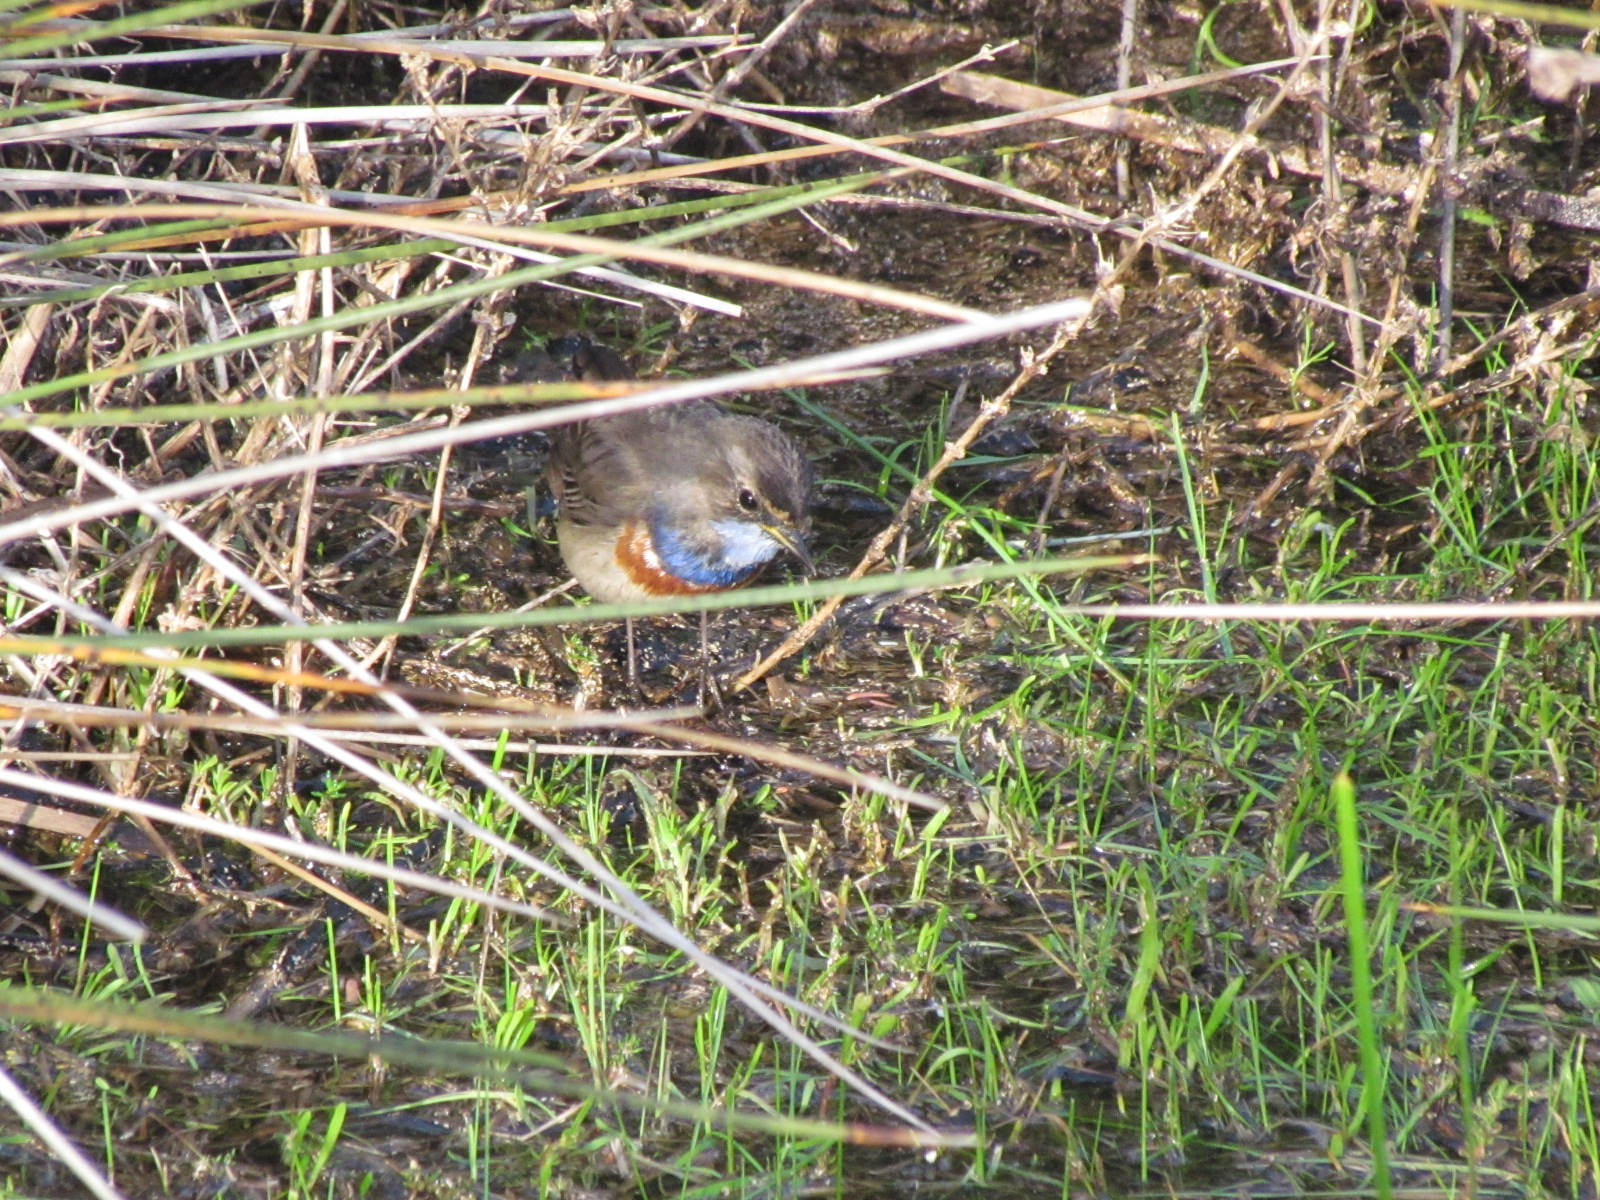 Bluethroat in the vegetation